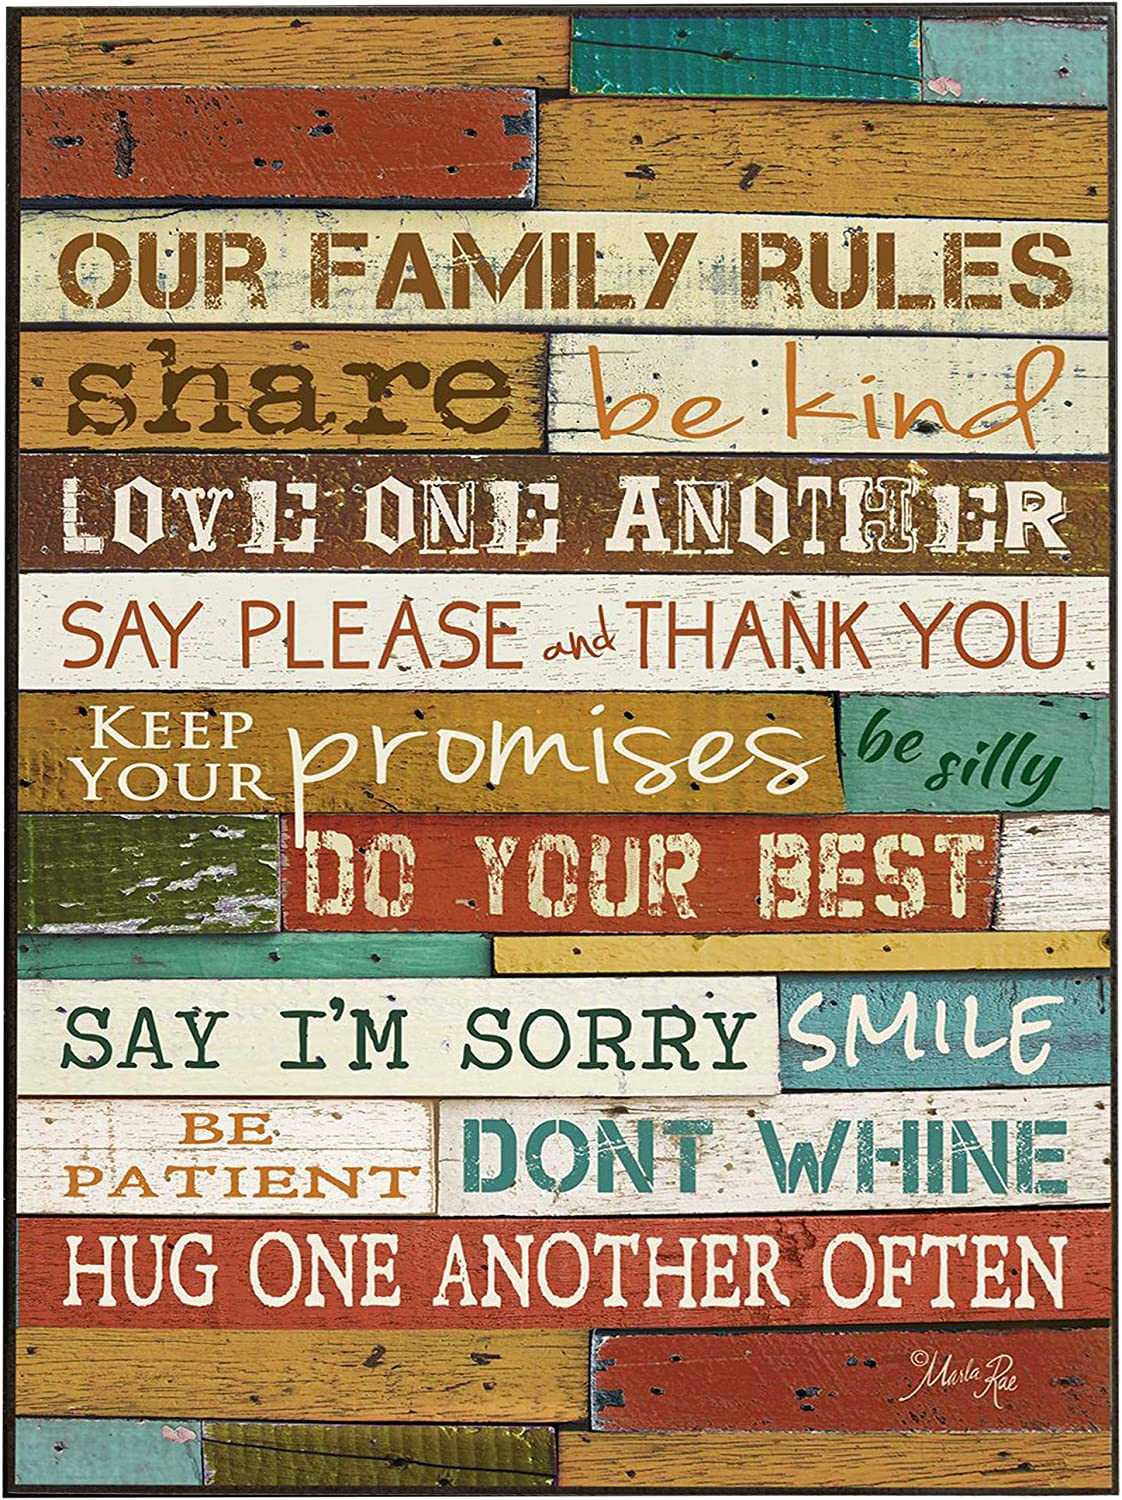 P. Graham Dunn Our Family Rules Colorful Distressed Wood 18 x 12 Wood Wall Art Sign Plaque